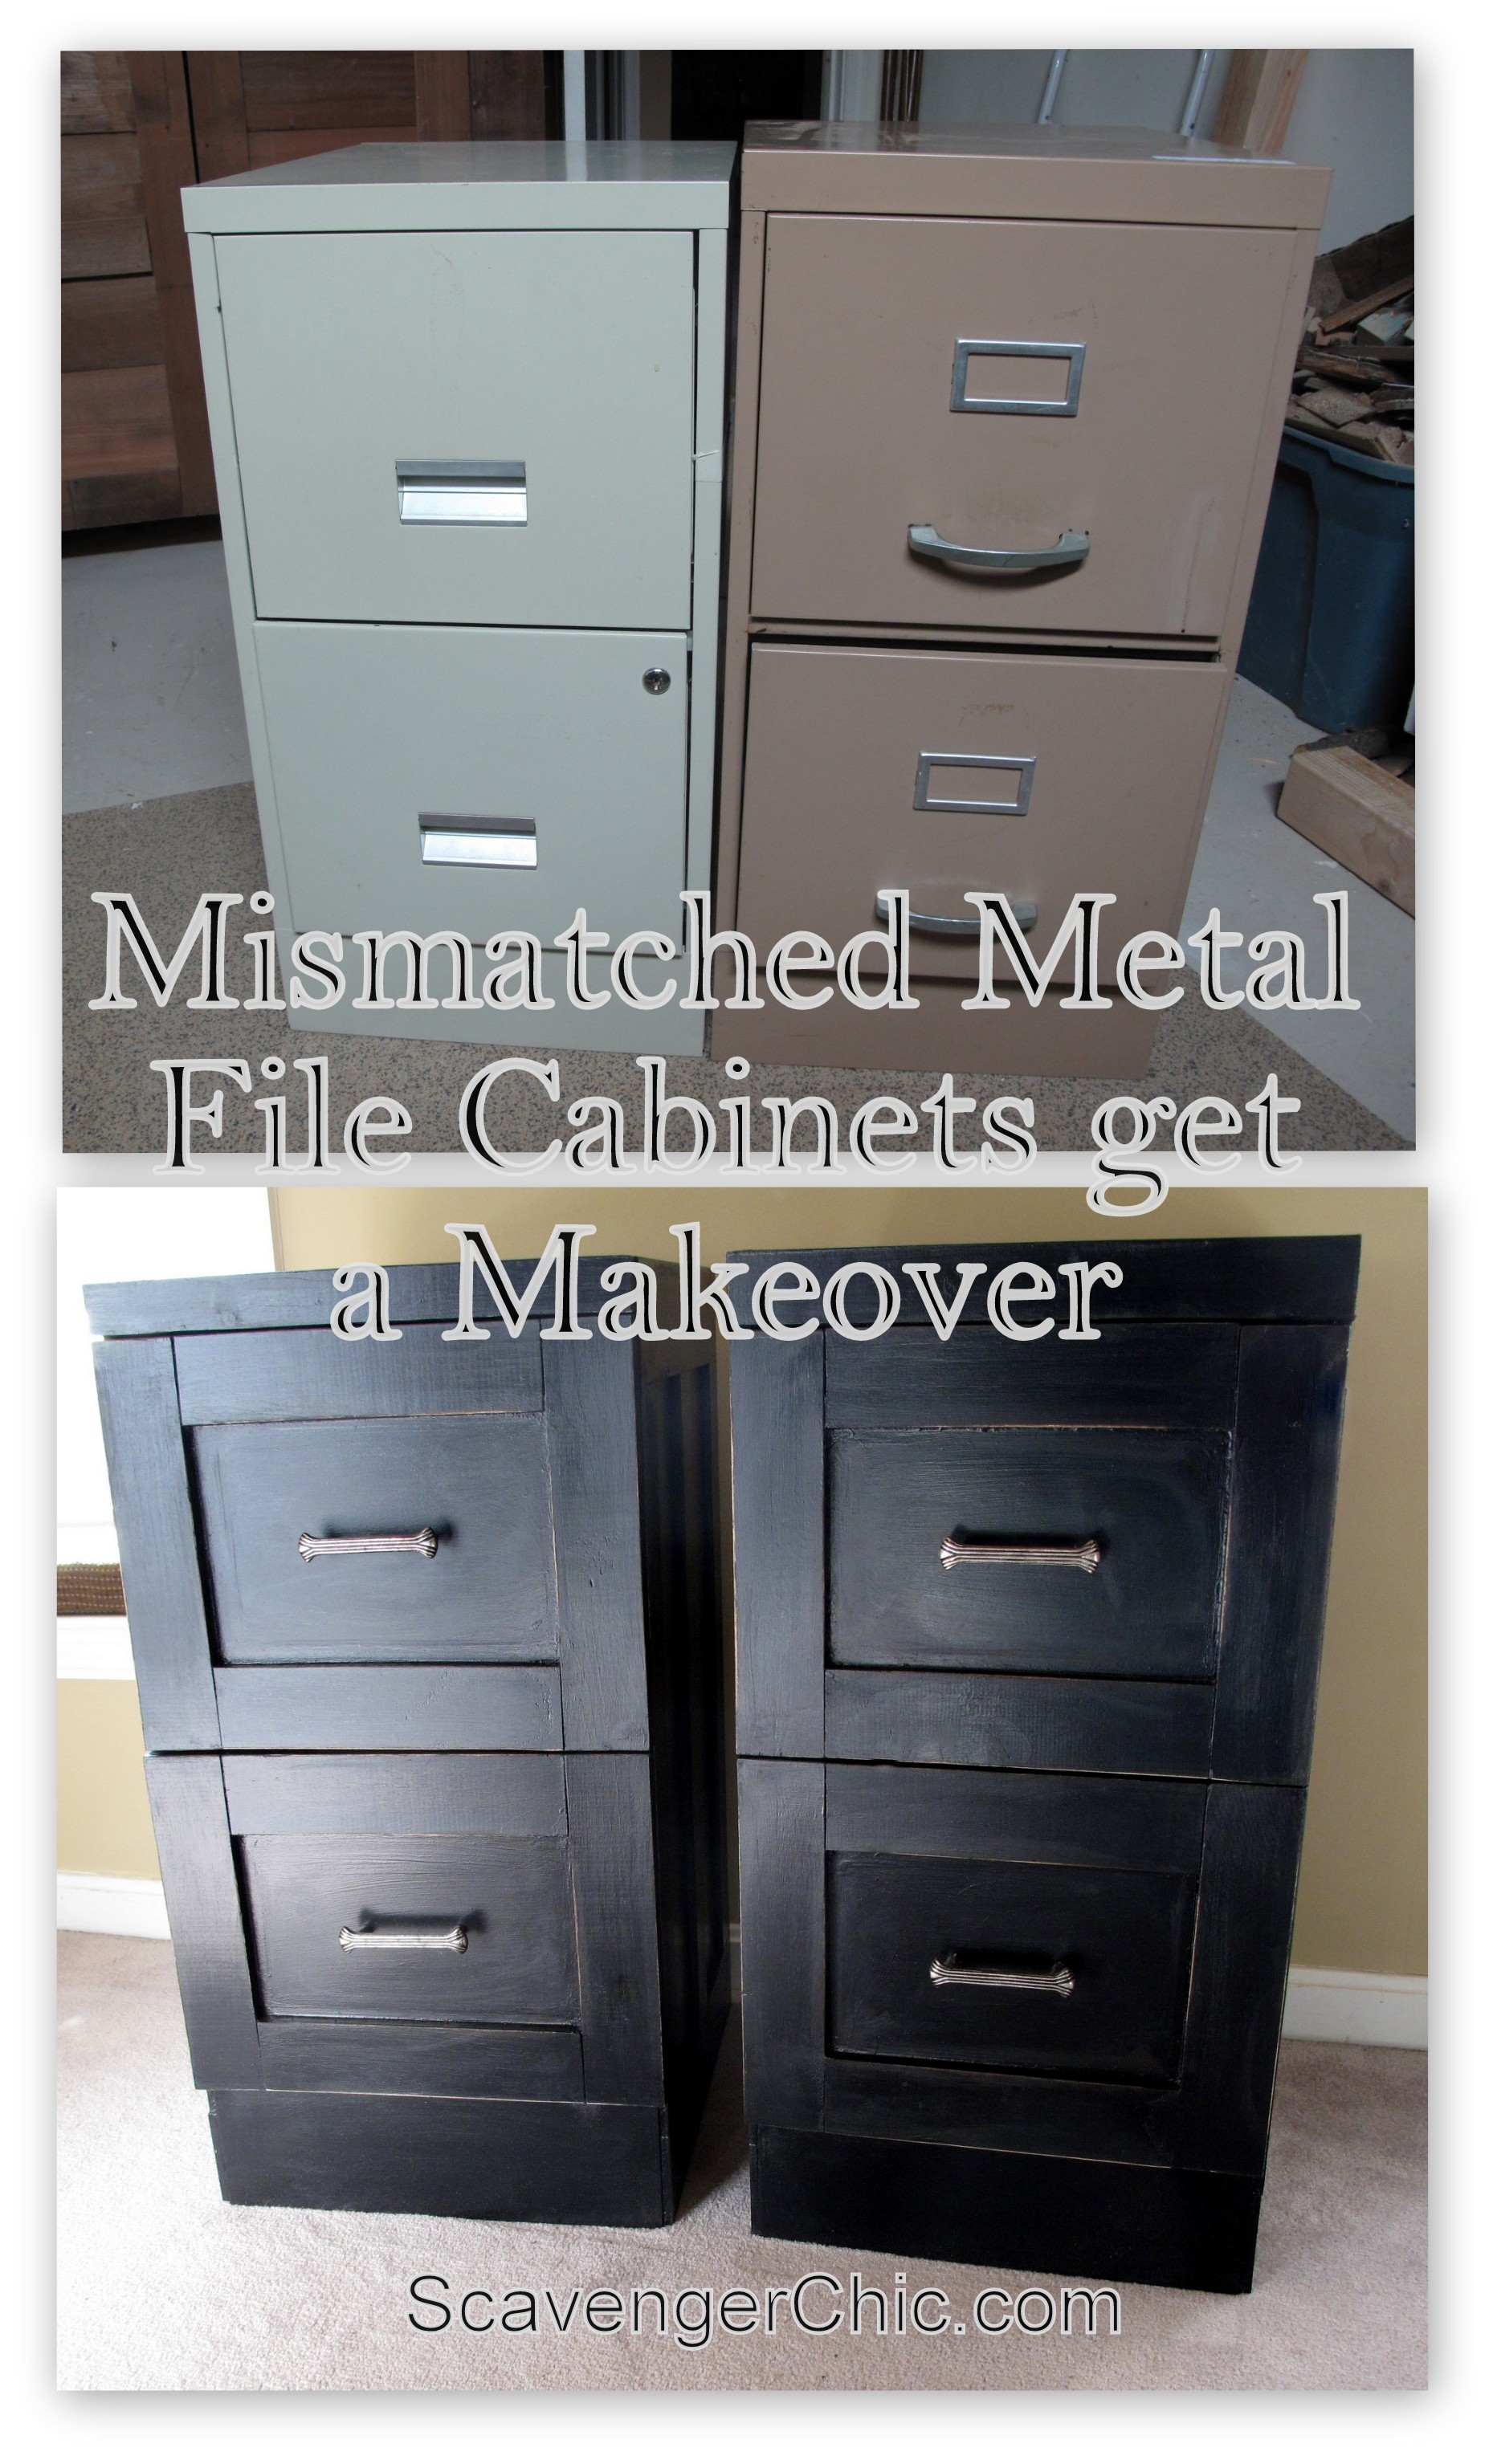 mismatched metal file cabinets get a makeover – scavenger chic 30 inch tall file cabinet